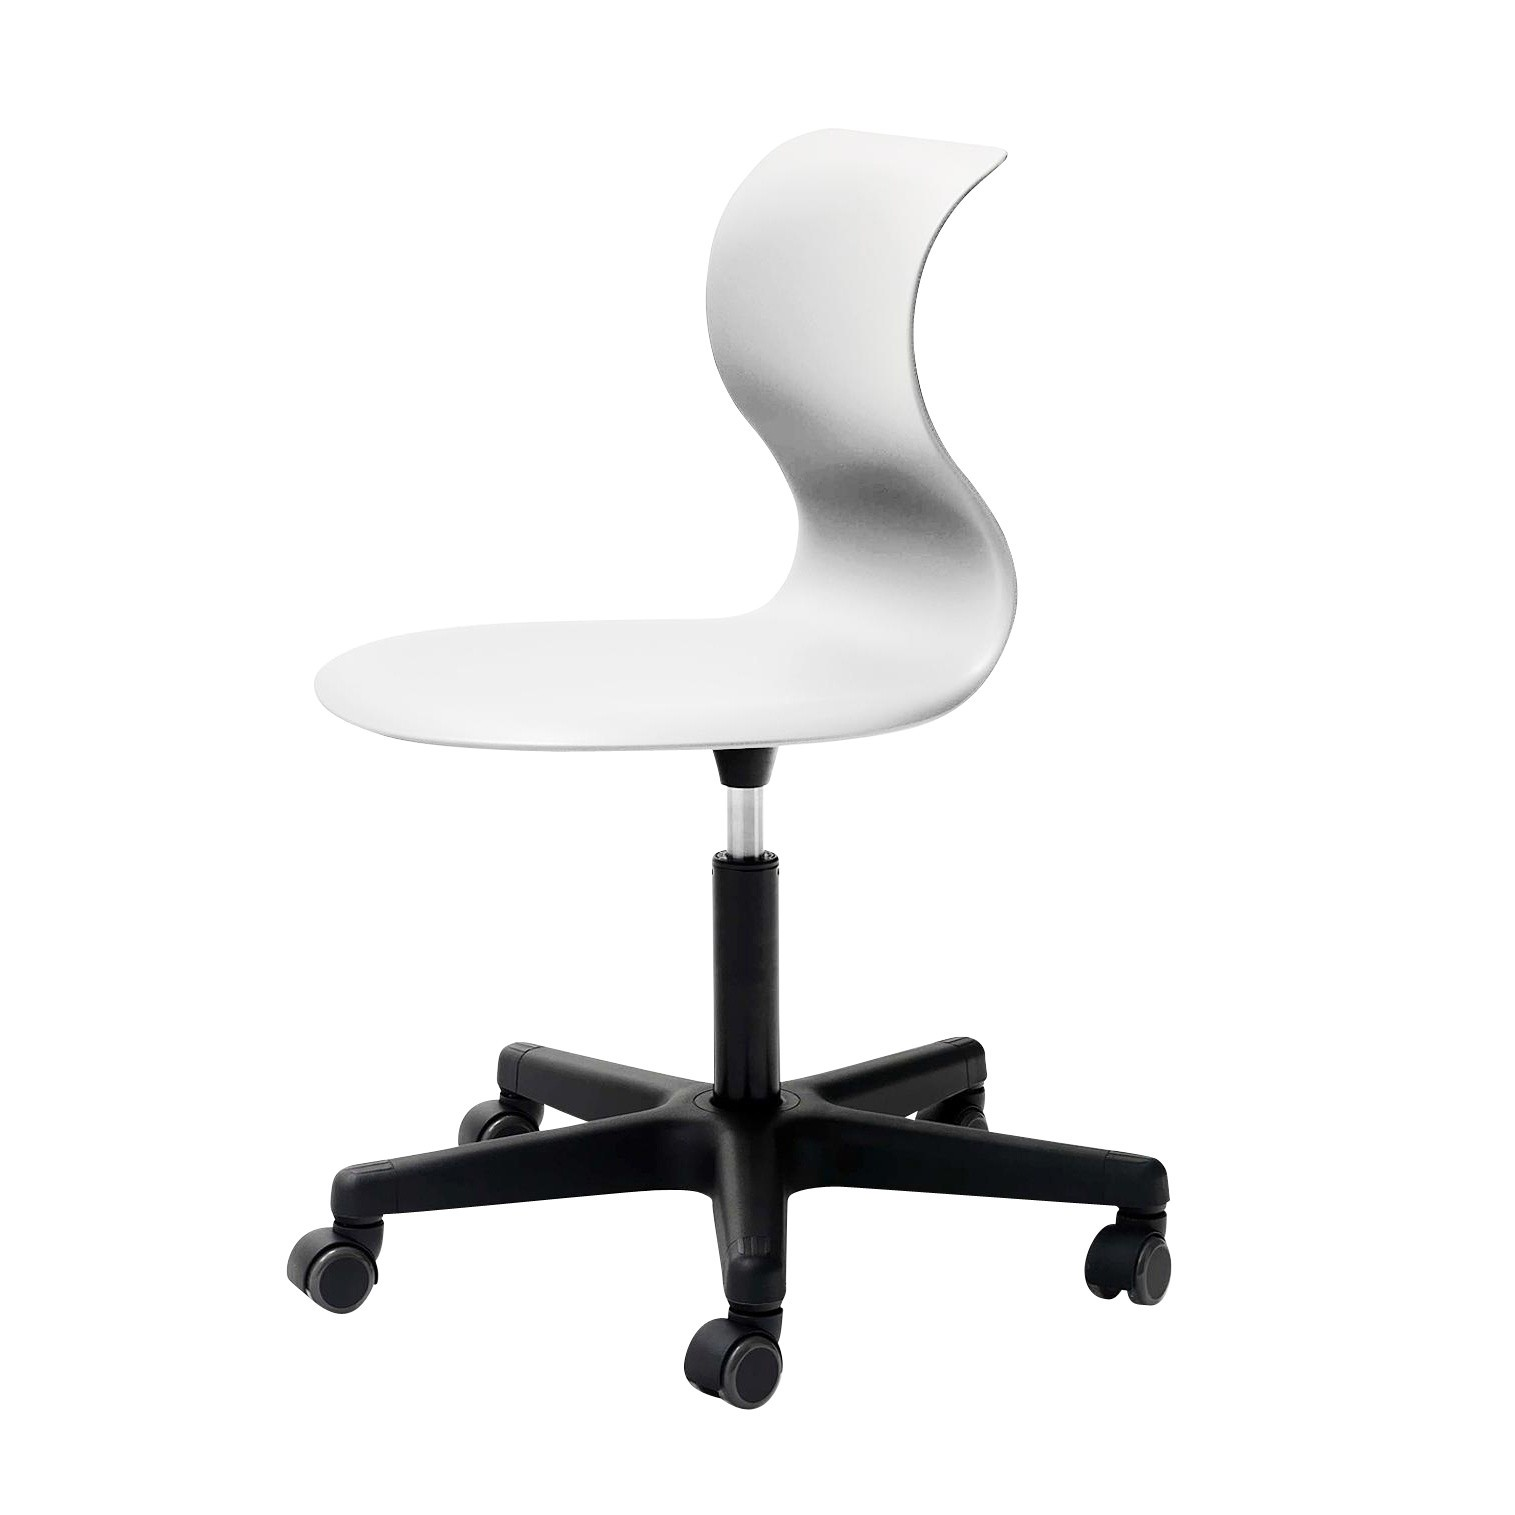 chair with wheels desk footrest recliner flototto pro 6 swivel ambientedirect white frame black polyamide seat